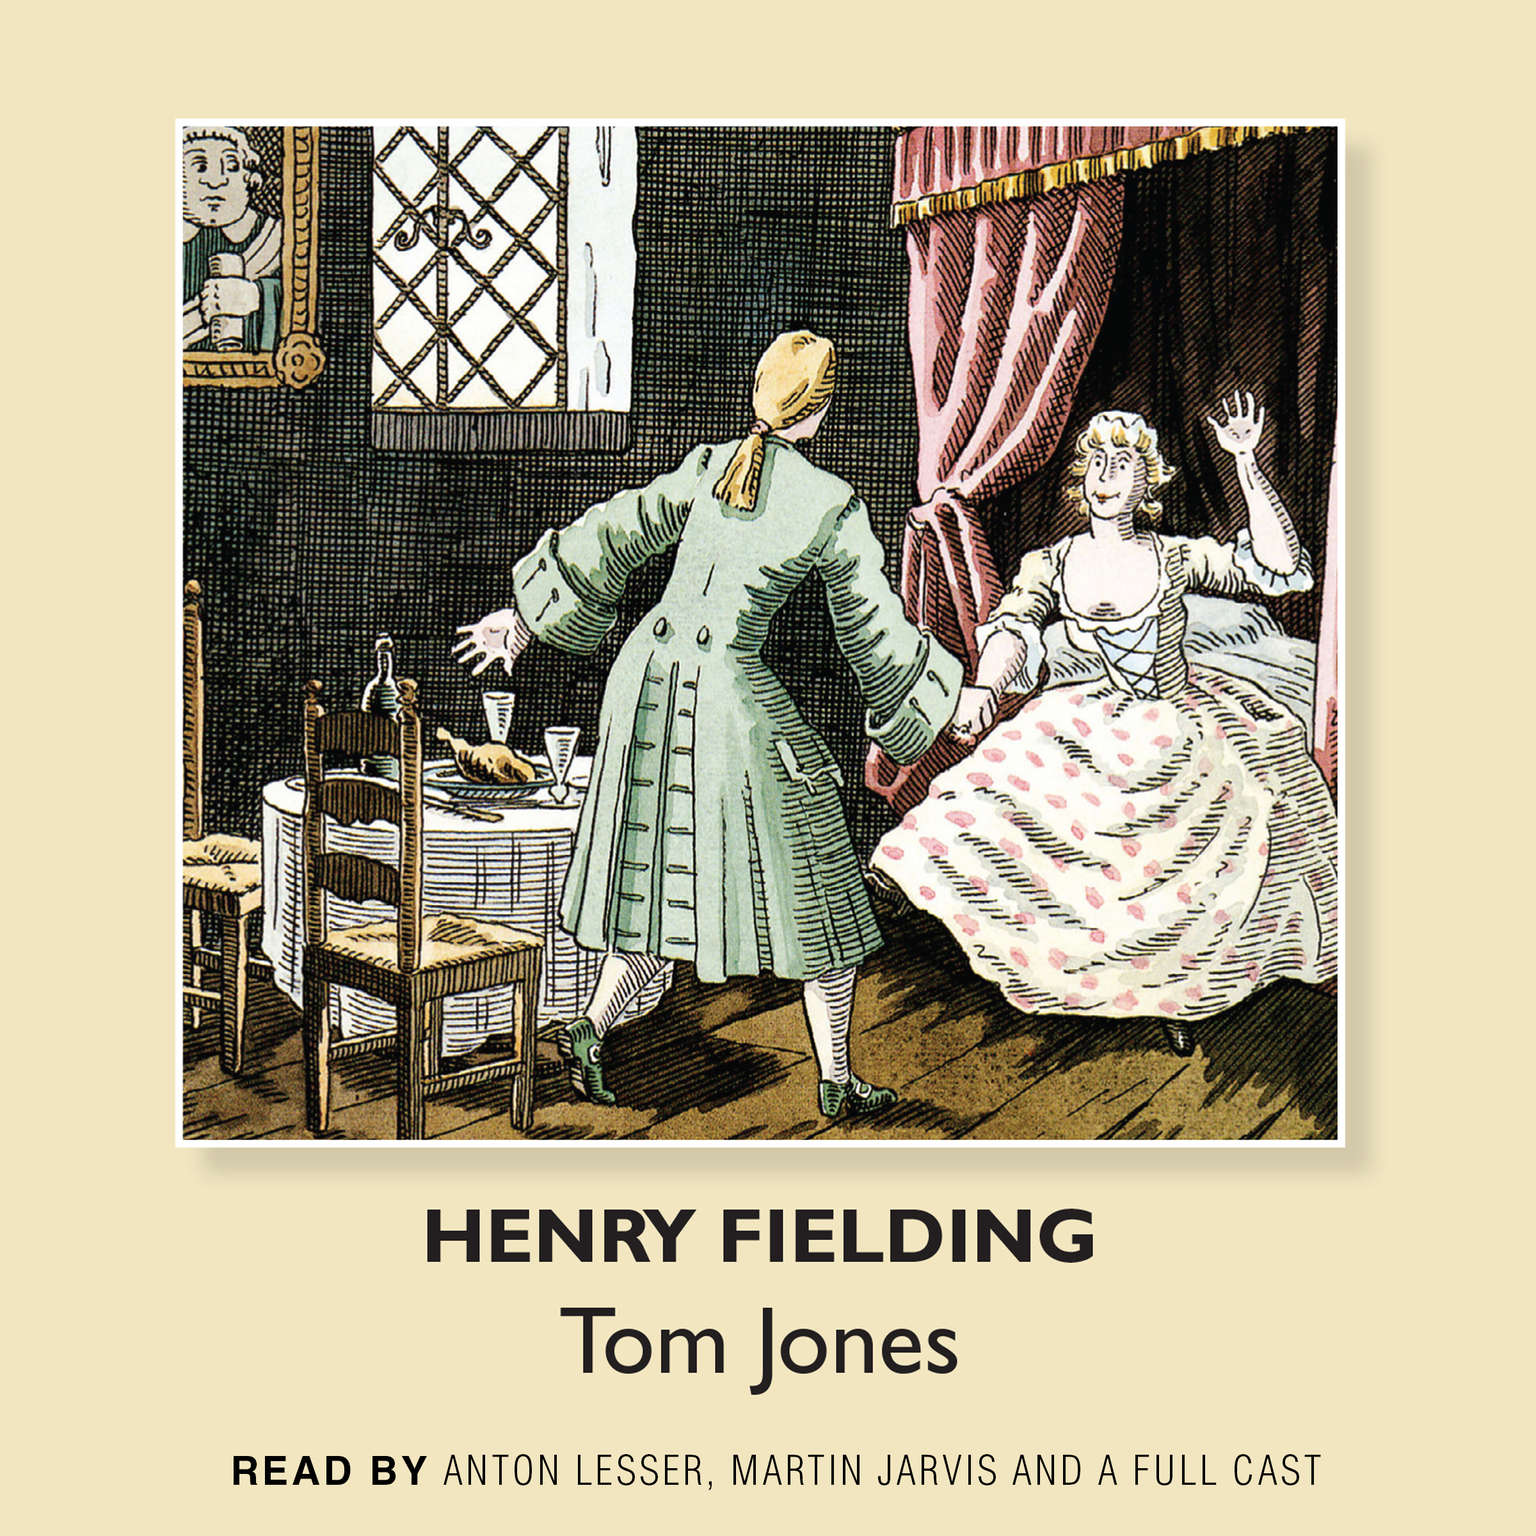 tom jones henry fielding Henry fielding (22 april 1707 – 8 october 1754) was an english novelist and dramatist known for his rich, earthy humour and satirical prowess, and as the author of the picaresque novel tom jones.